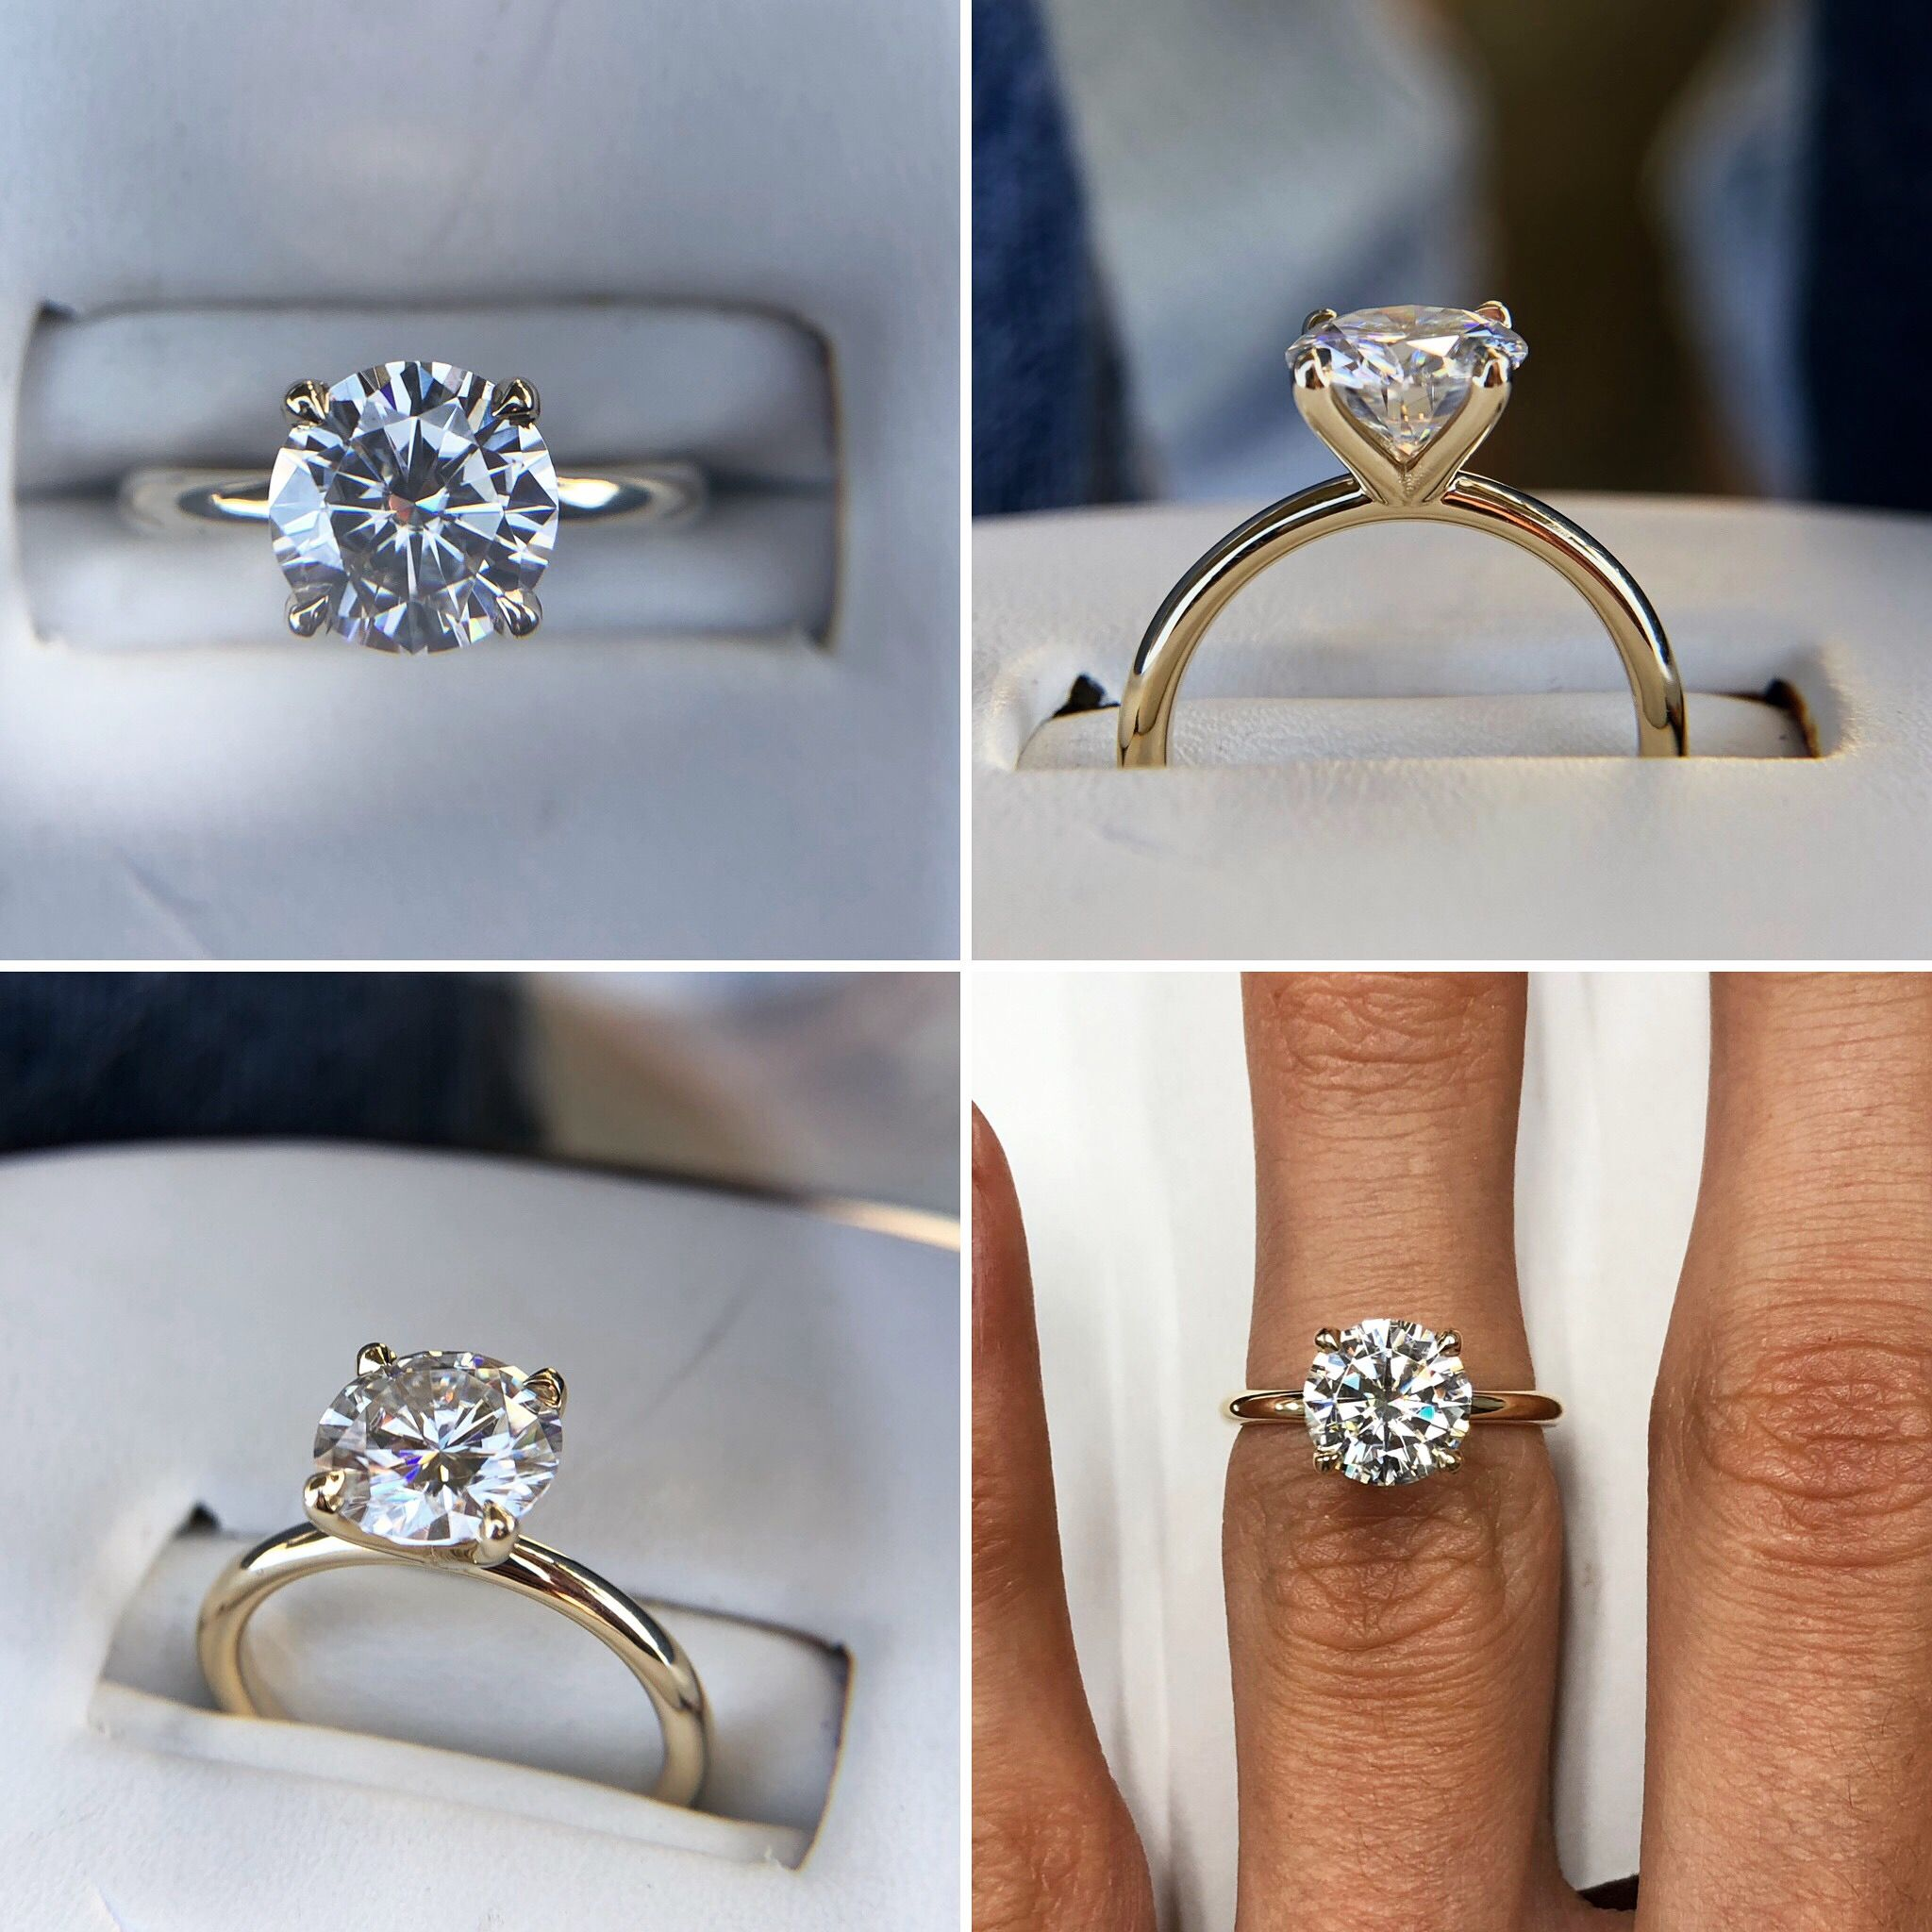 Gia 2 Carat Round Diamond Solitaire Ring 14k White Gold Moissanite Engagement Ring Solitaire Yellow Engagement Rings Rose Gold Engagement Ring